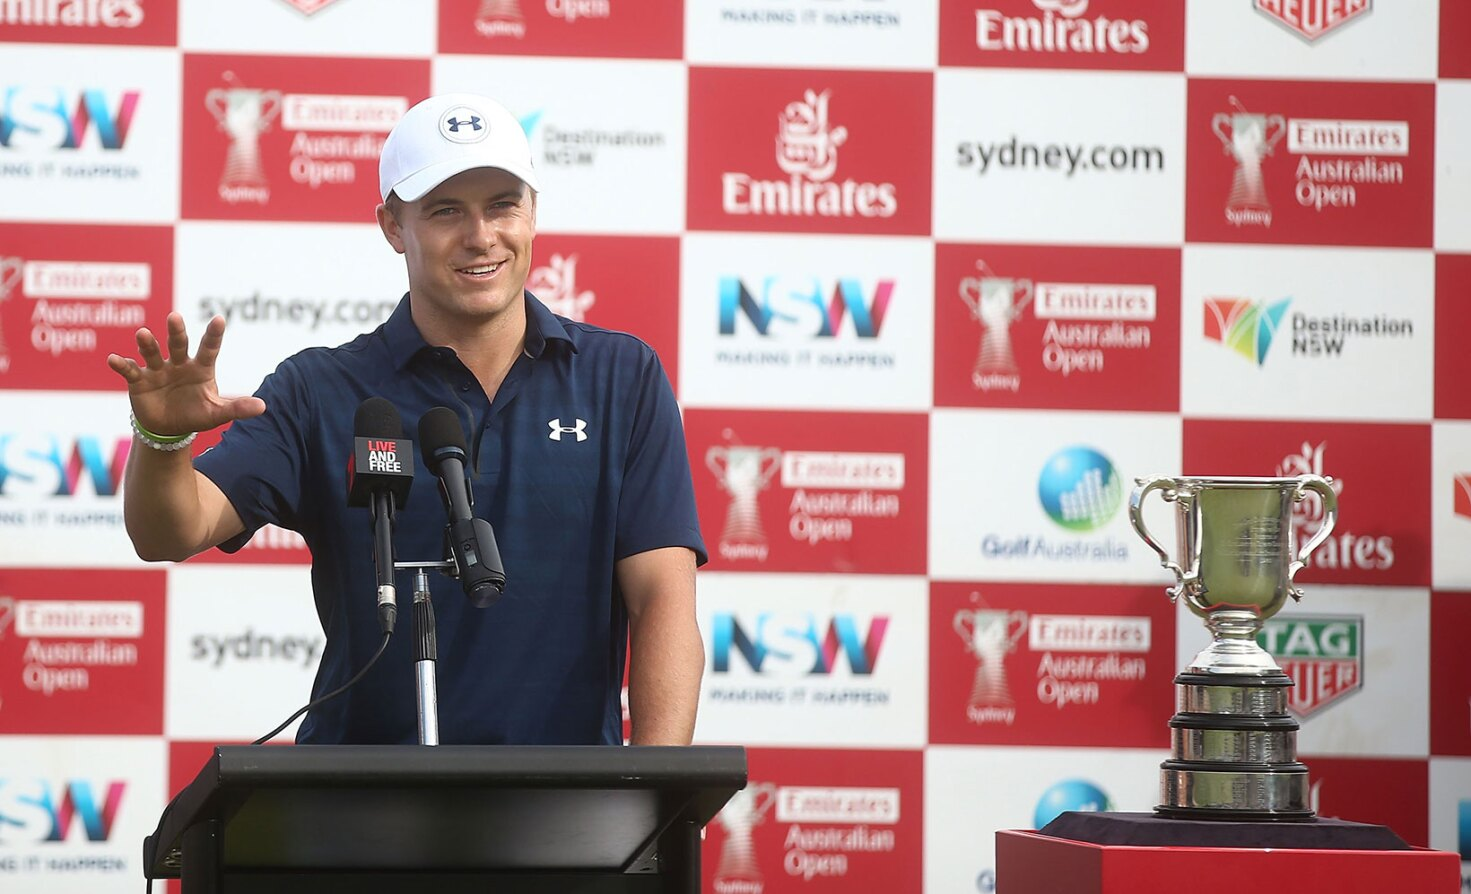 2016 Emirates Australian Open: Jordan Talks to the Press After His Second Australian Open Win